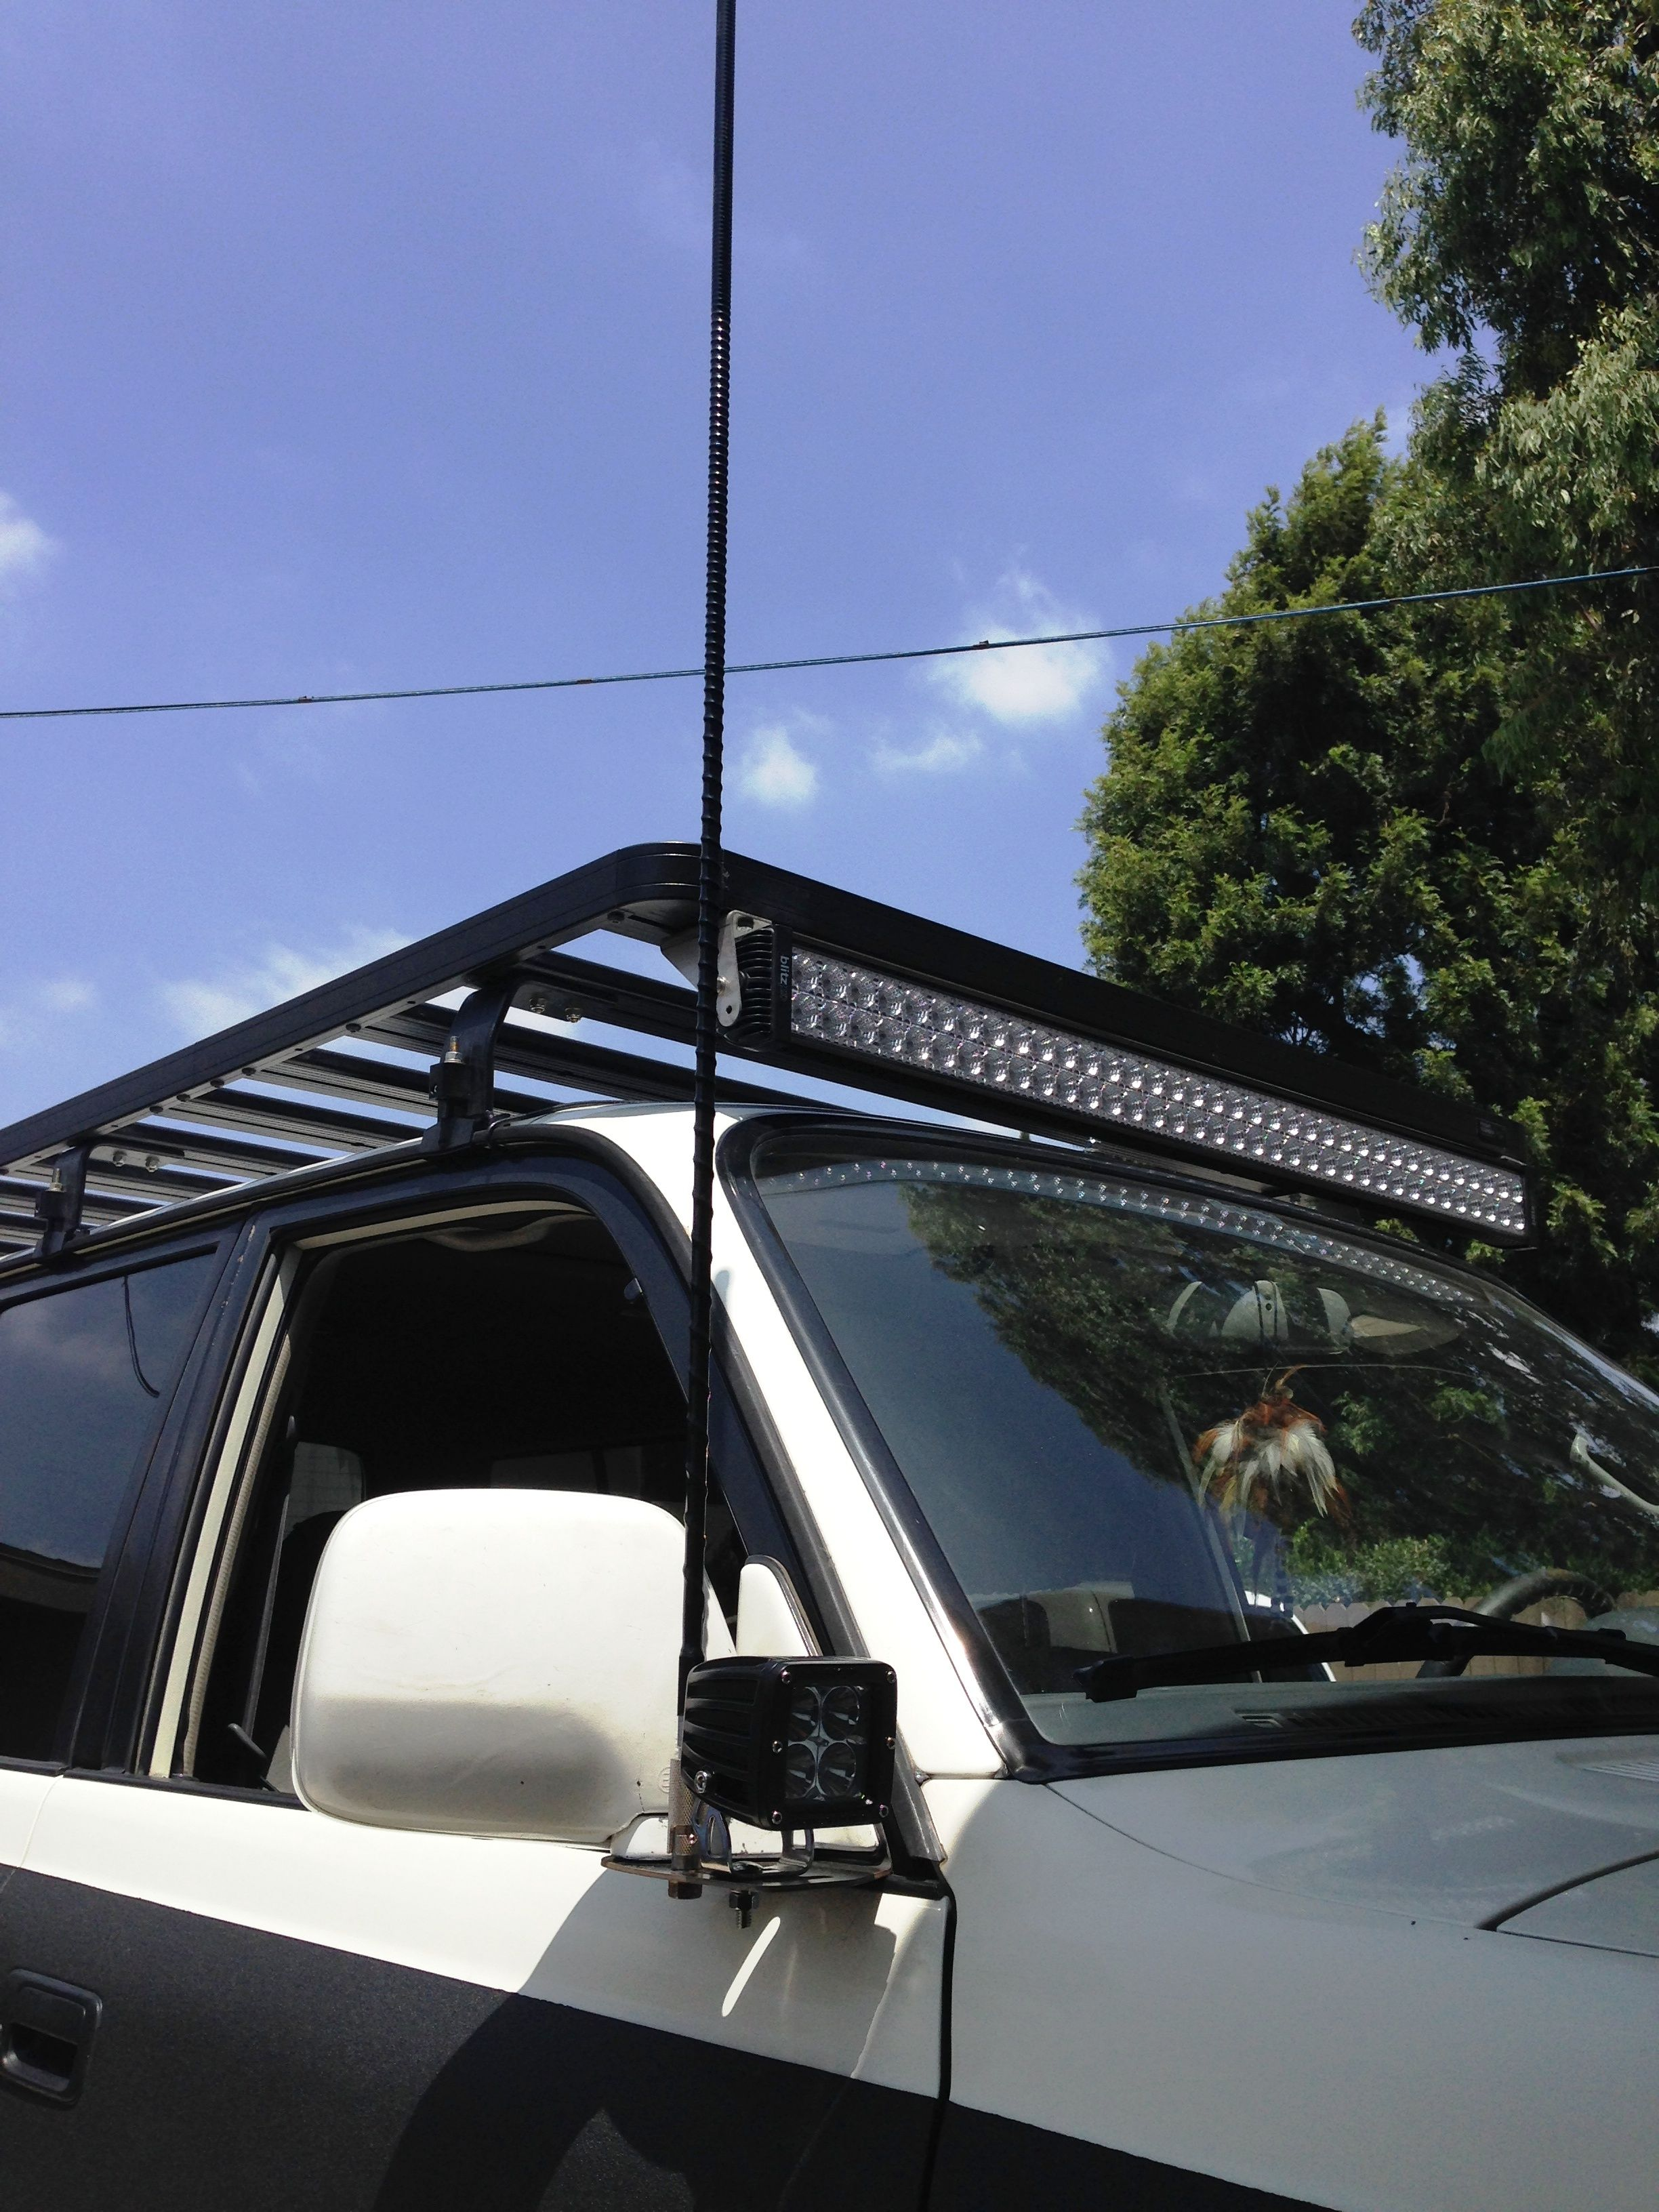 yodaTEQ Ditch Light Mounts Toyota FJ80 Land Cruiser Lexus LX450 With the  installation of these Toyota